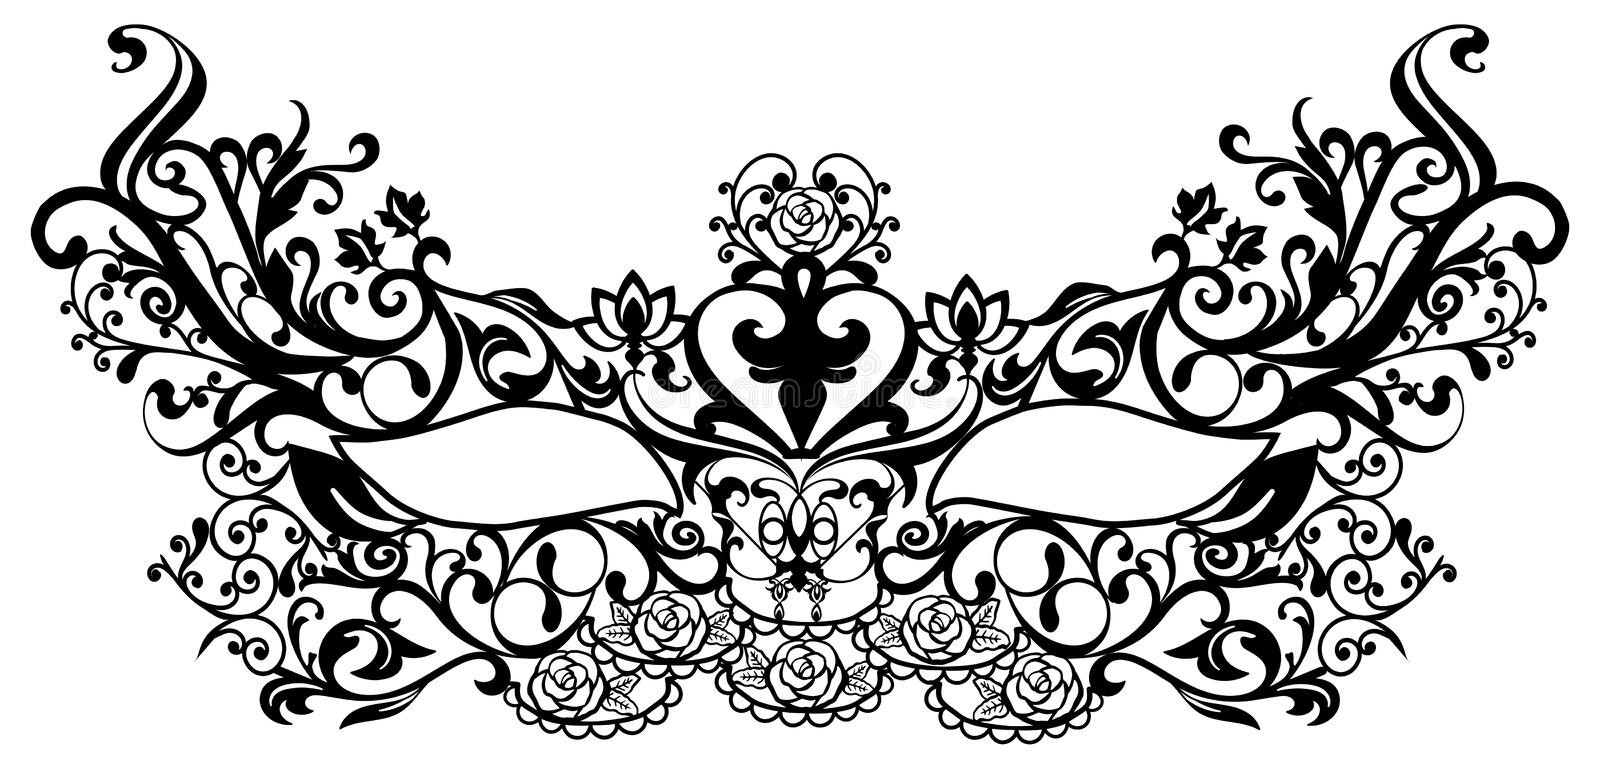 Carnival Masks-openwork lace-Cutout Lace royalty free illustration